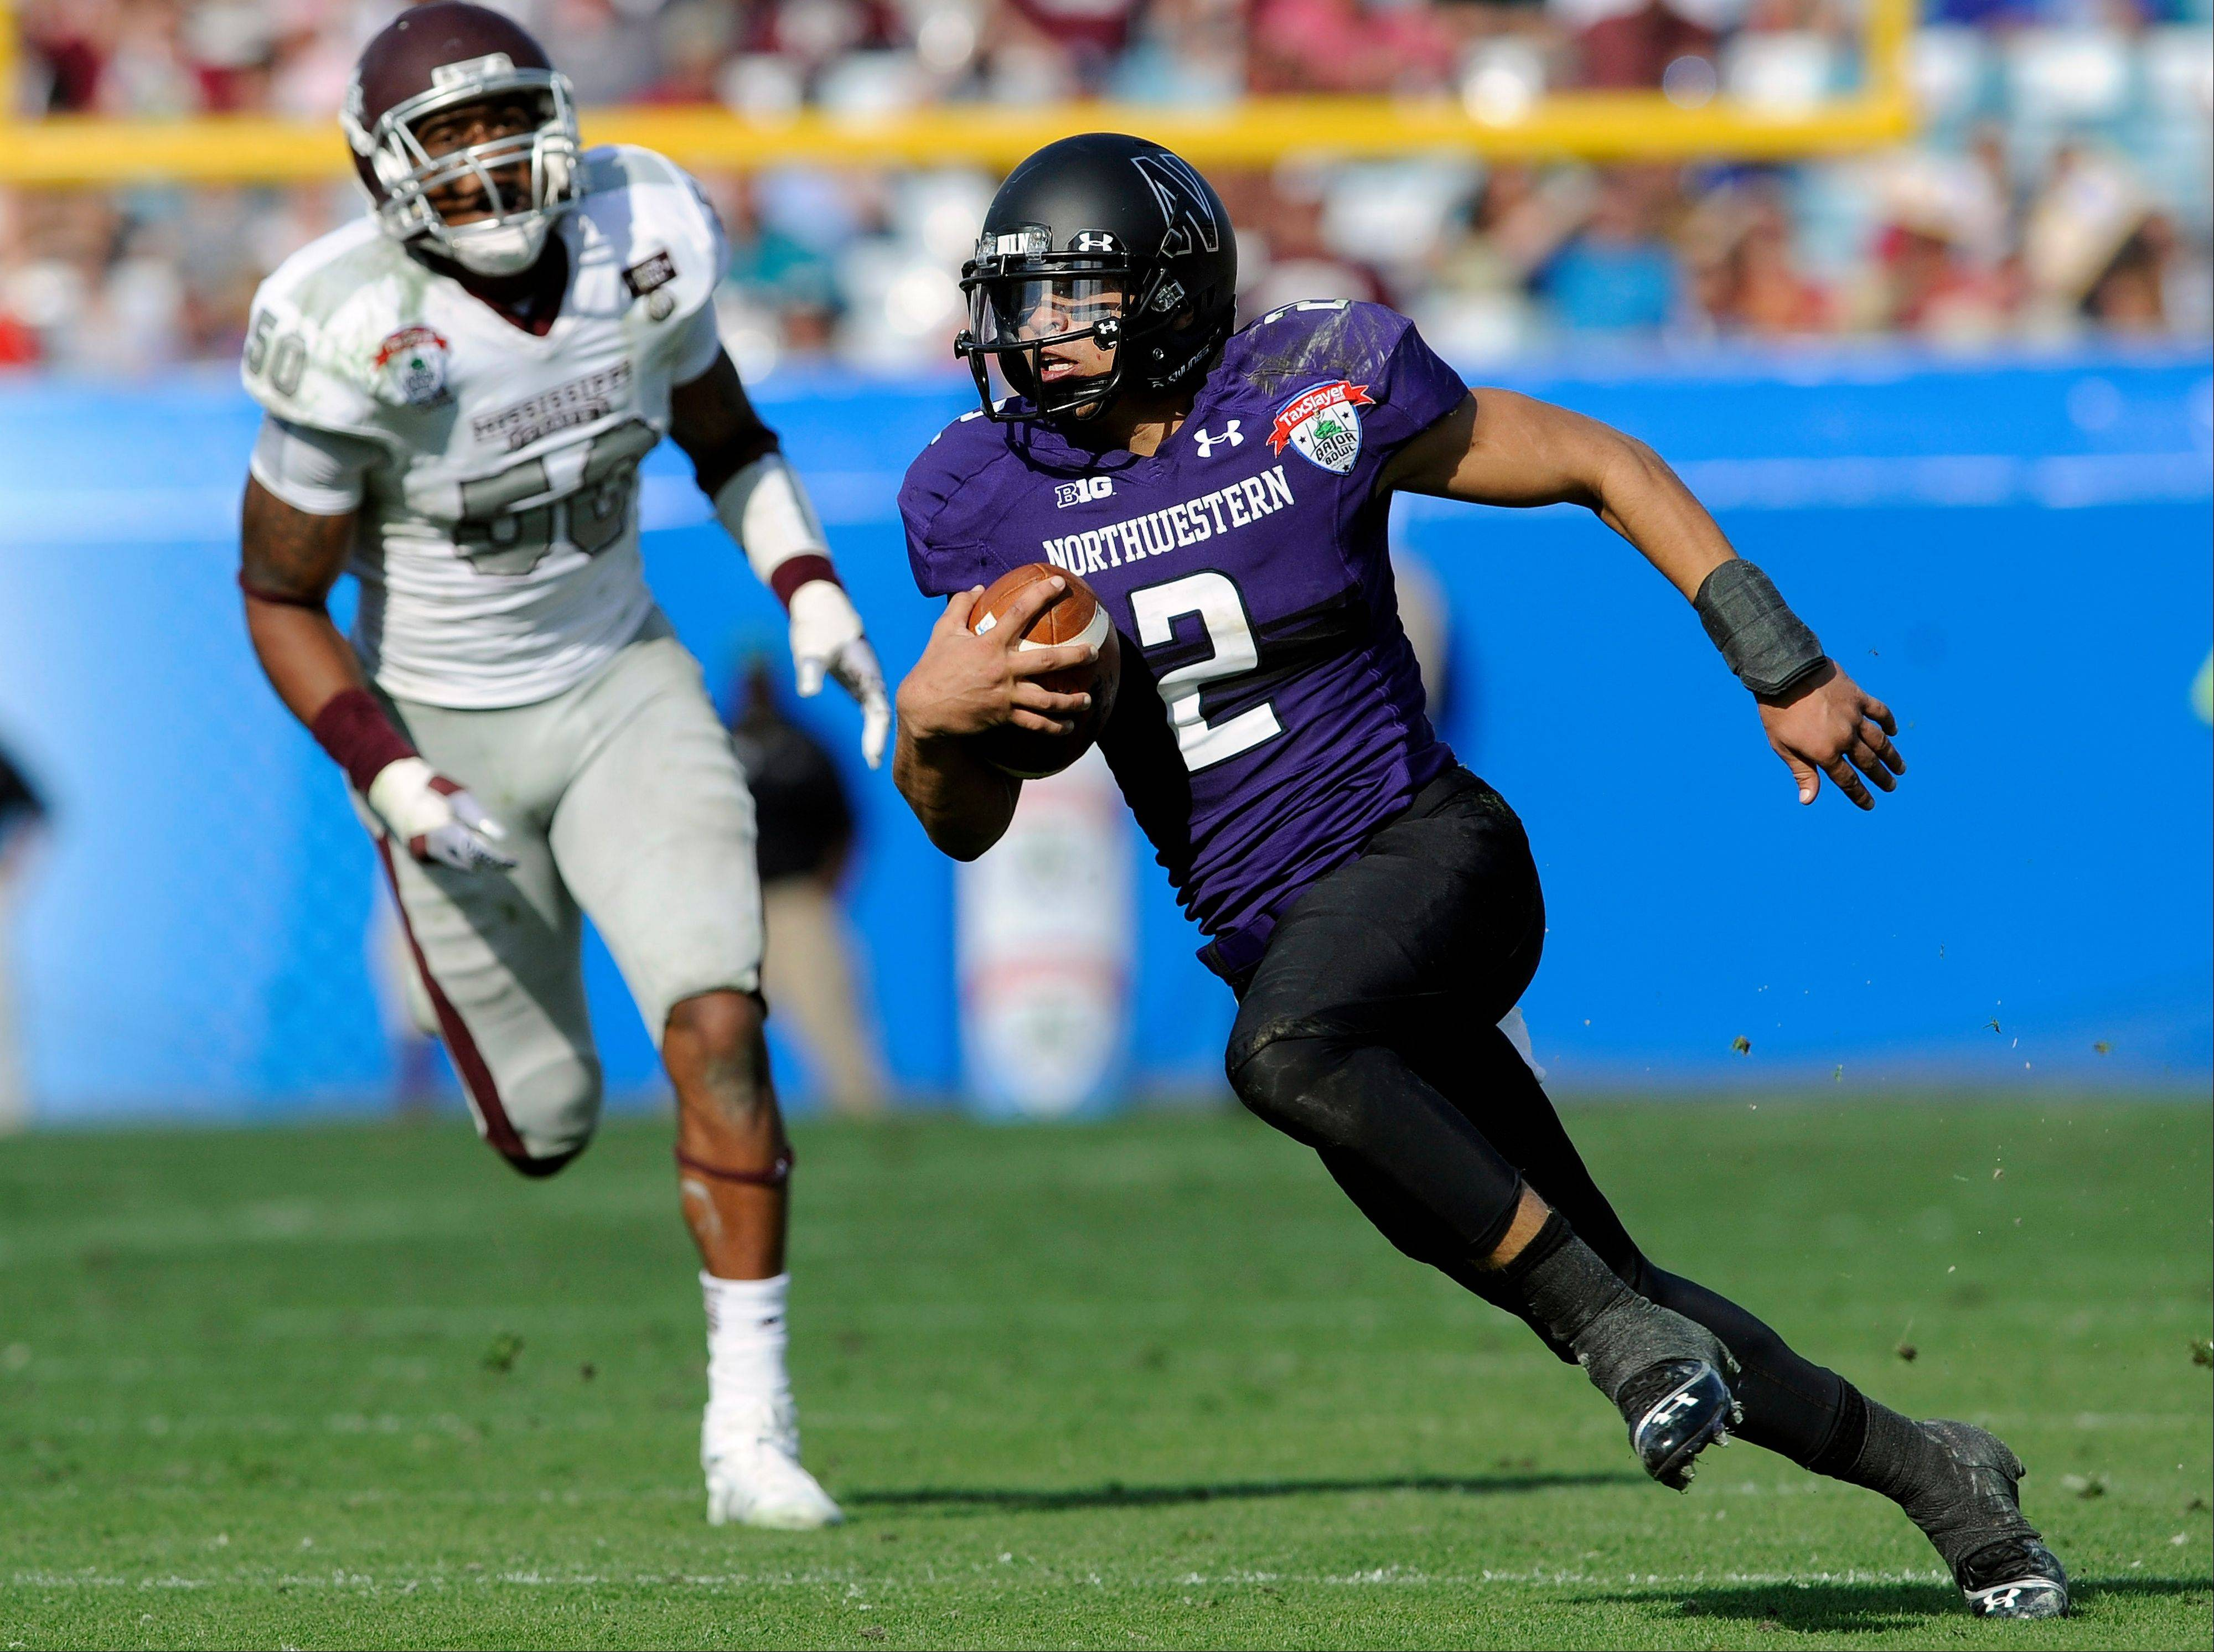 Northwestern quarterback Kain Colter (2) breaks a long run during the second half of the Gator Bowl on Tuesday in Jacksonville, Fla. Northwestern beat Mississippi State 34-20.